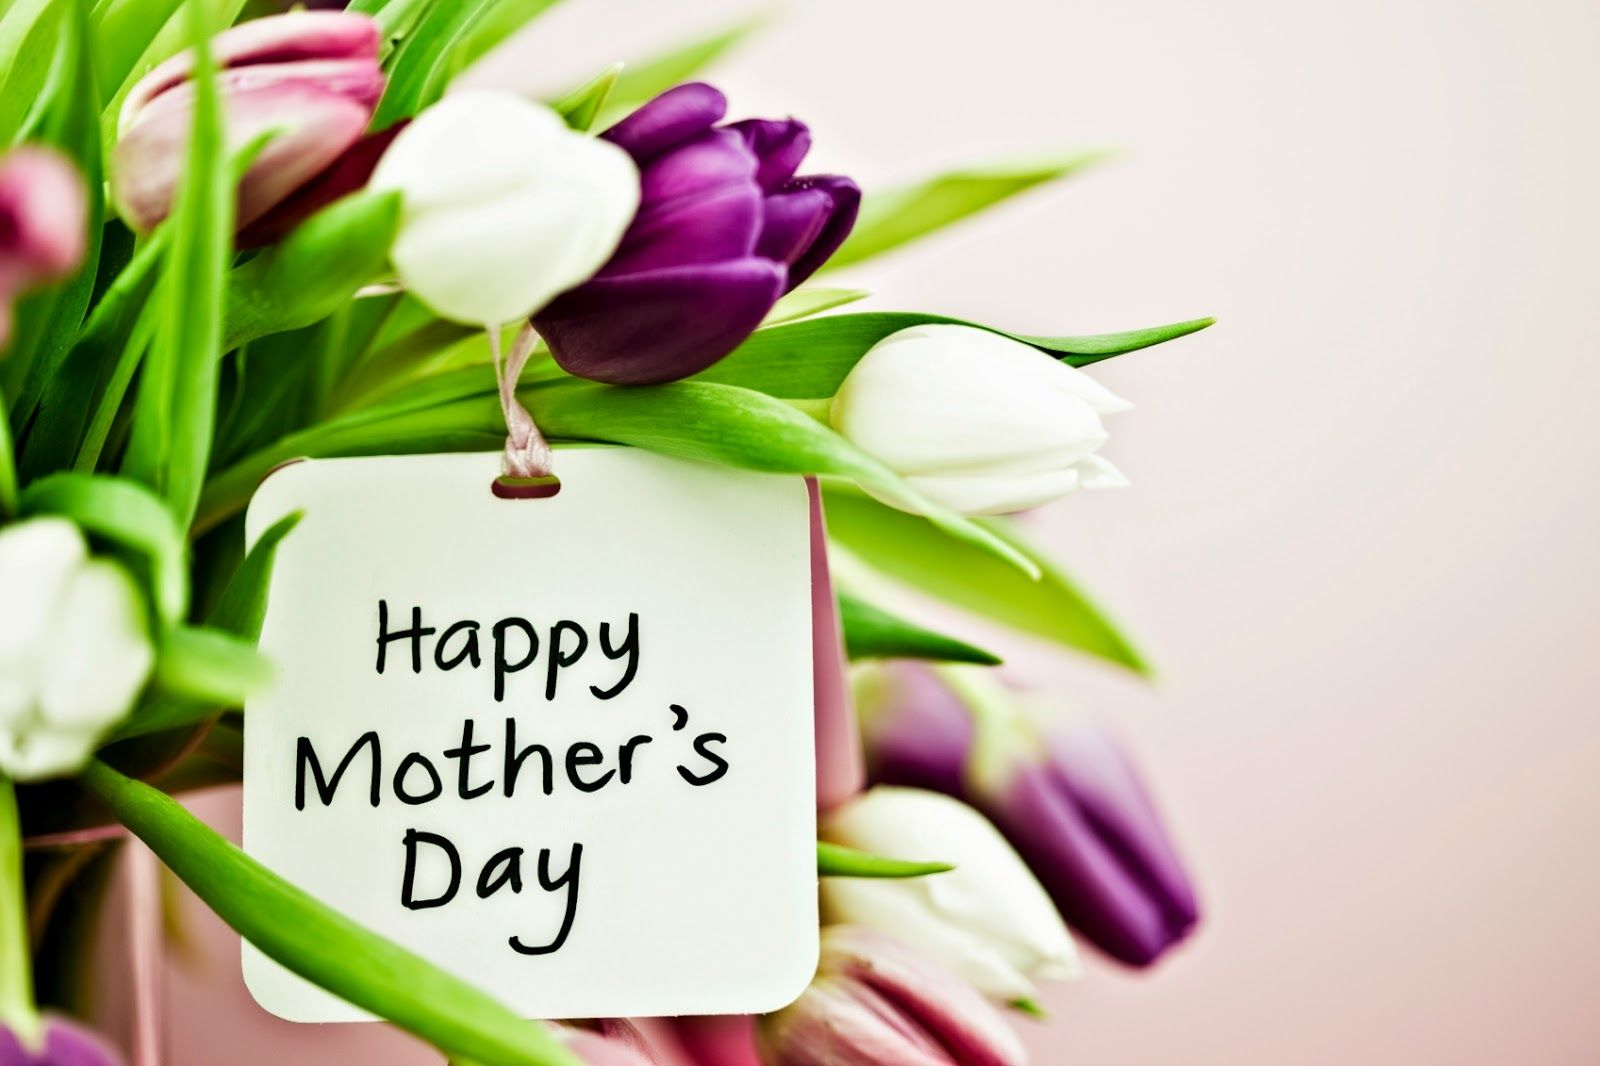 Happy Mothers Day Status For Whatsapp Facebook Dp And Cover Photos Happy Mothers Day Wallpaper Happy Mothers Day Wishes Mother Day Wishes